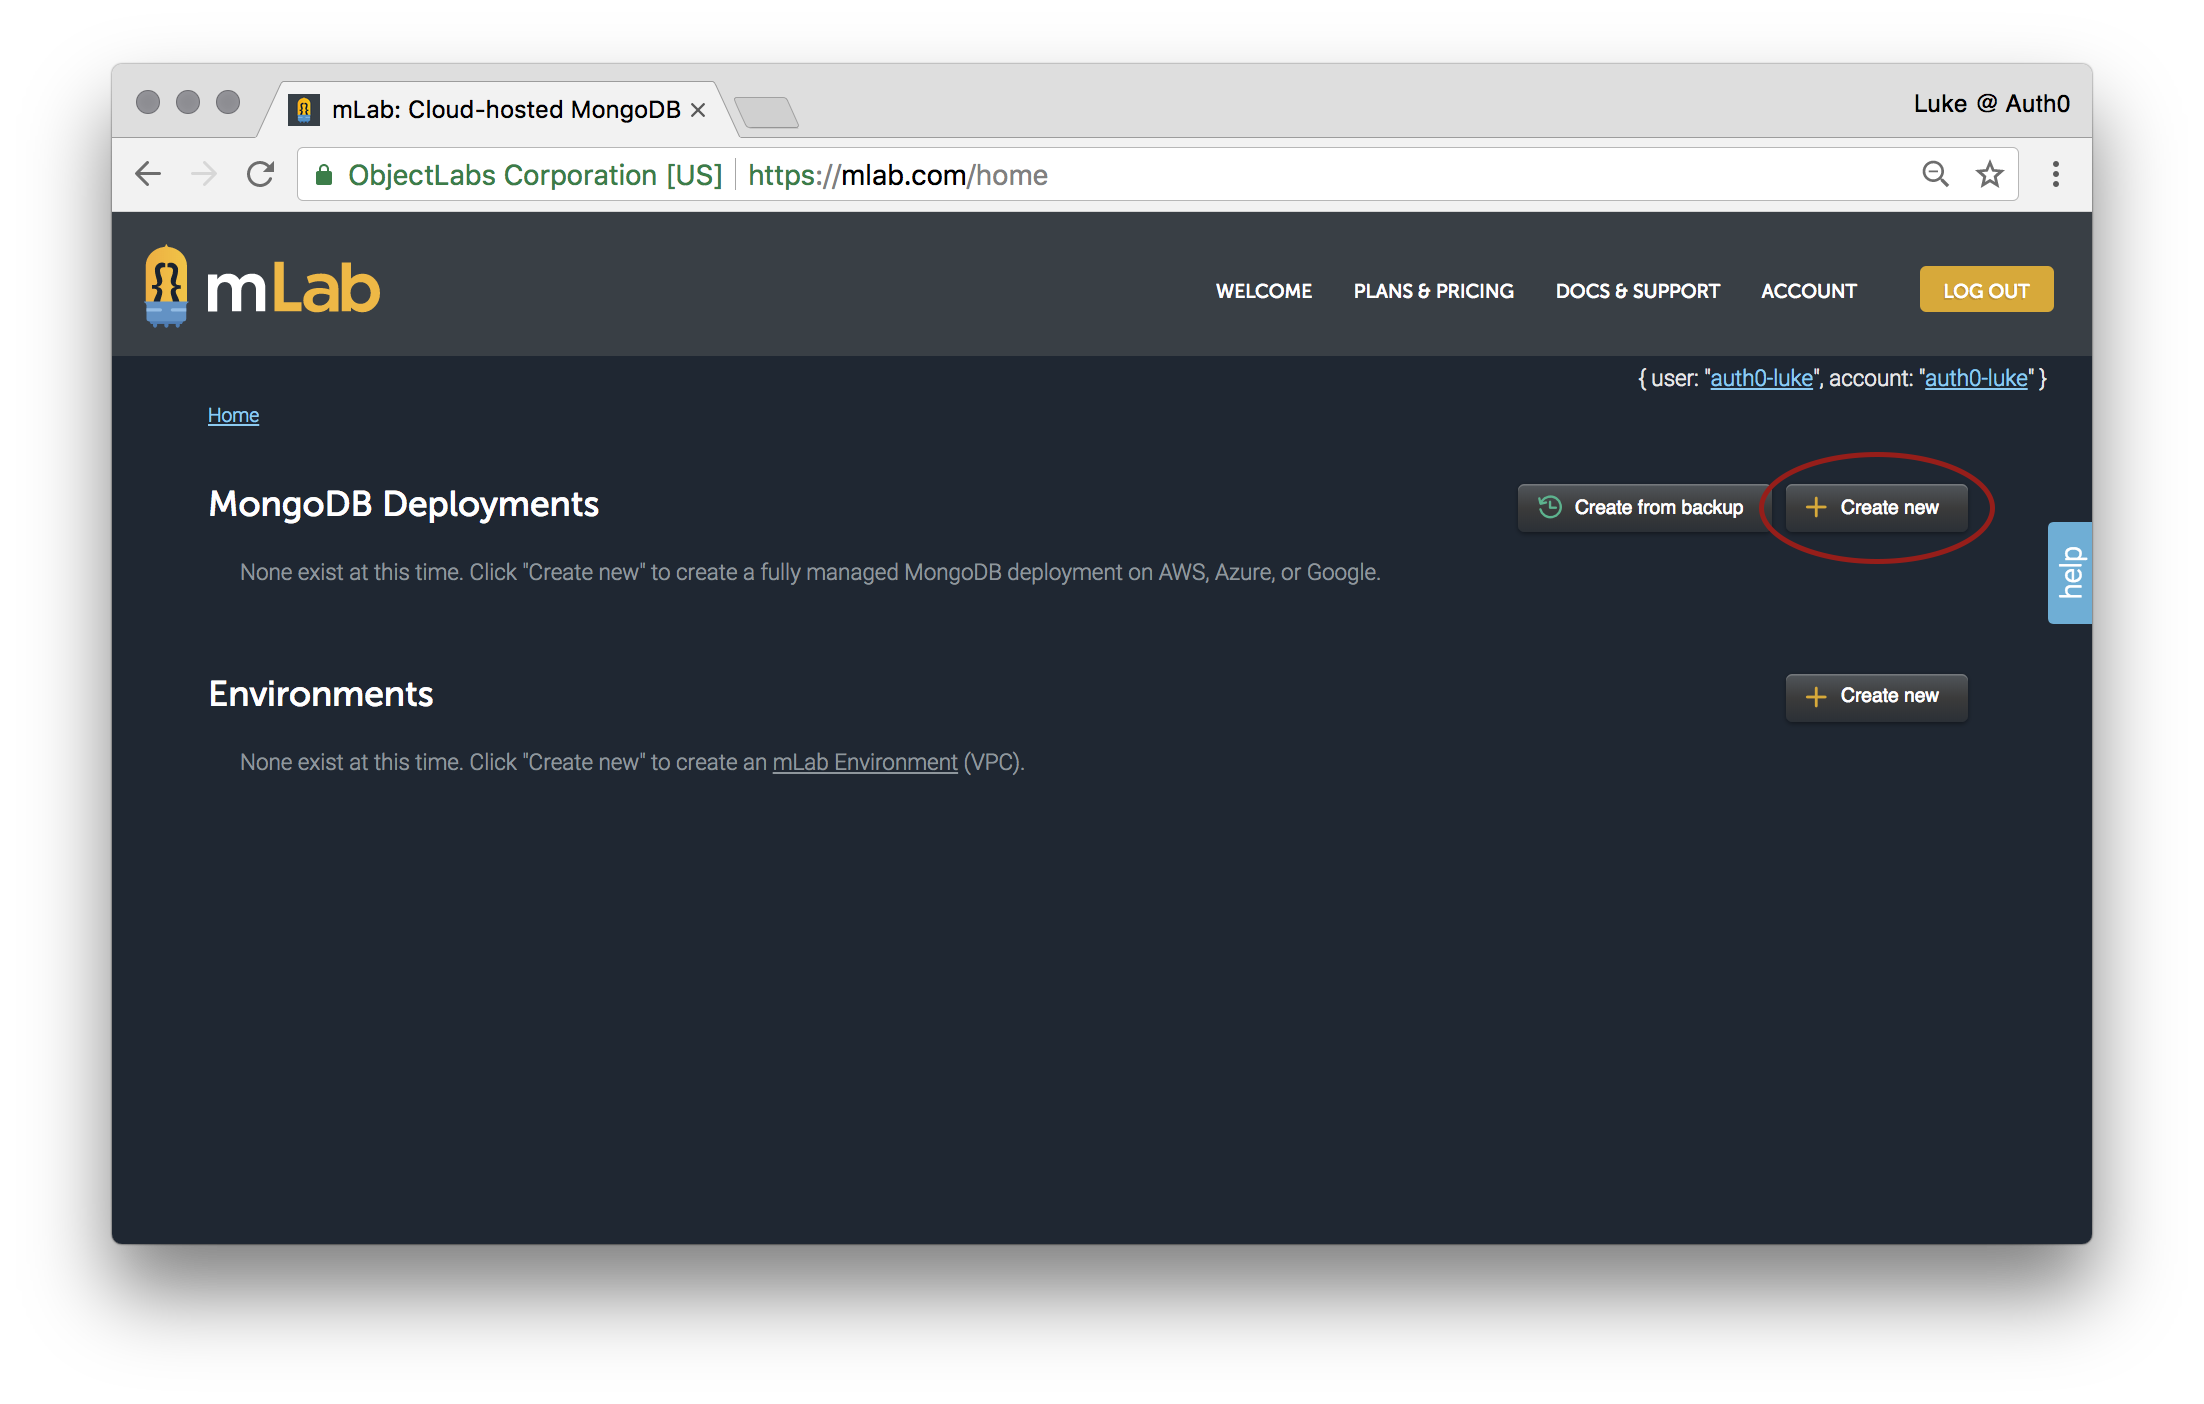 Click Create New in the MongoDB Deployments section